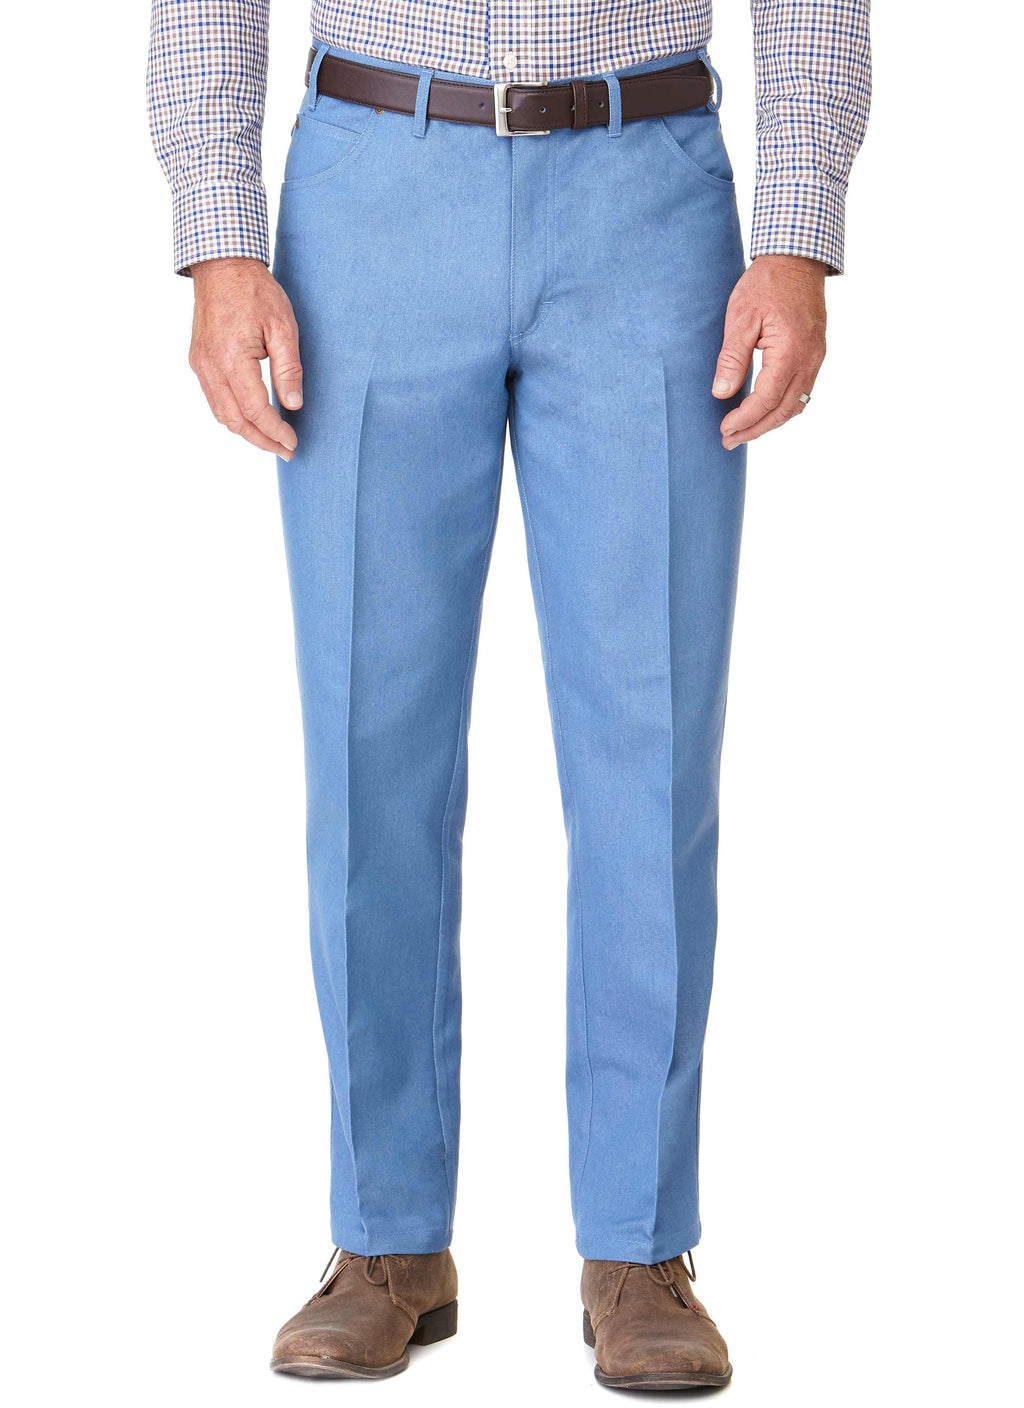 FLETCHER JEAN (MJ08B) - PALE BLUE - NEW STOCK